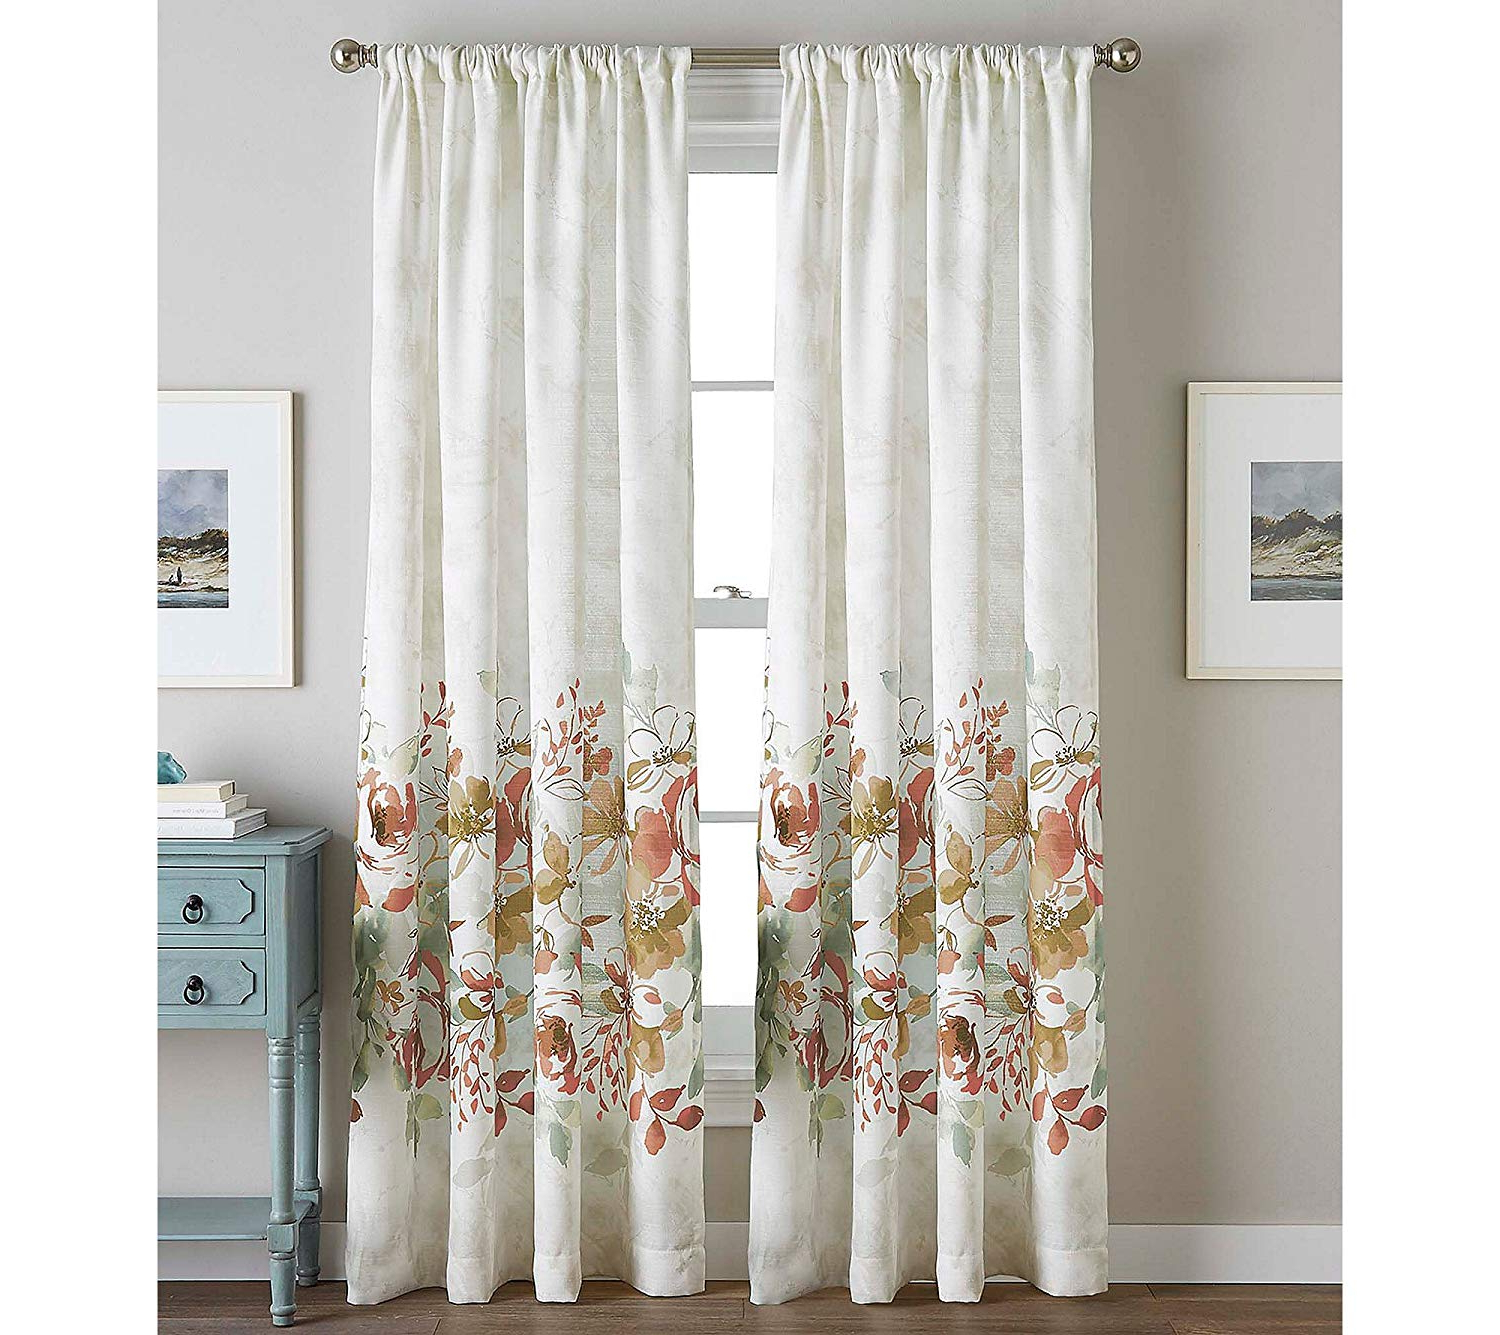 "Chf Watercolor Floral Curtain Panel, 84"", Spice For Current Andorra Watercolor Floral Textured Sheer Single Curtain Panels (View 7 of 20)"